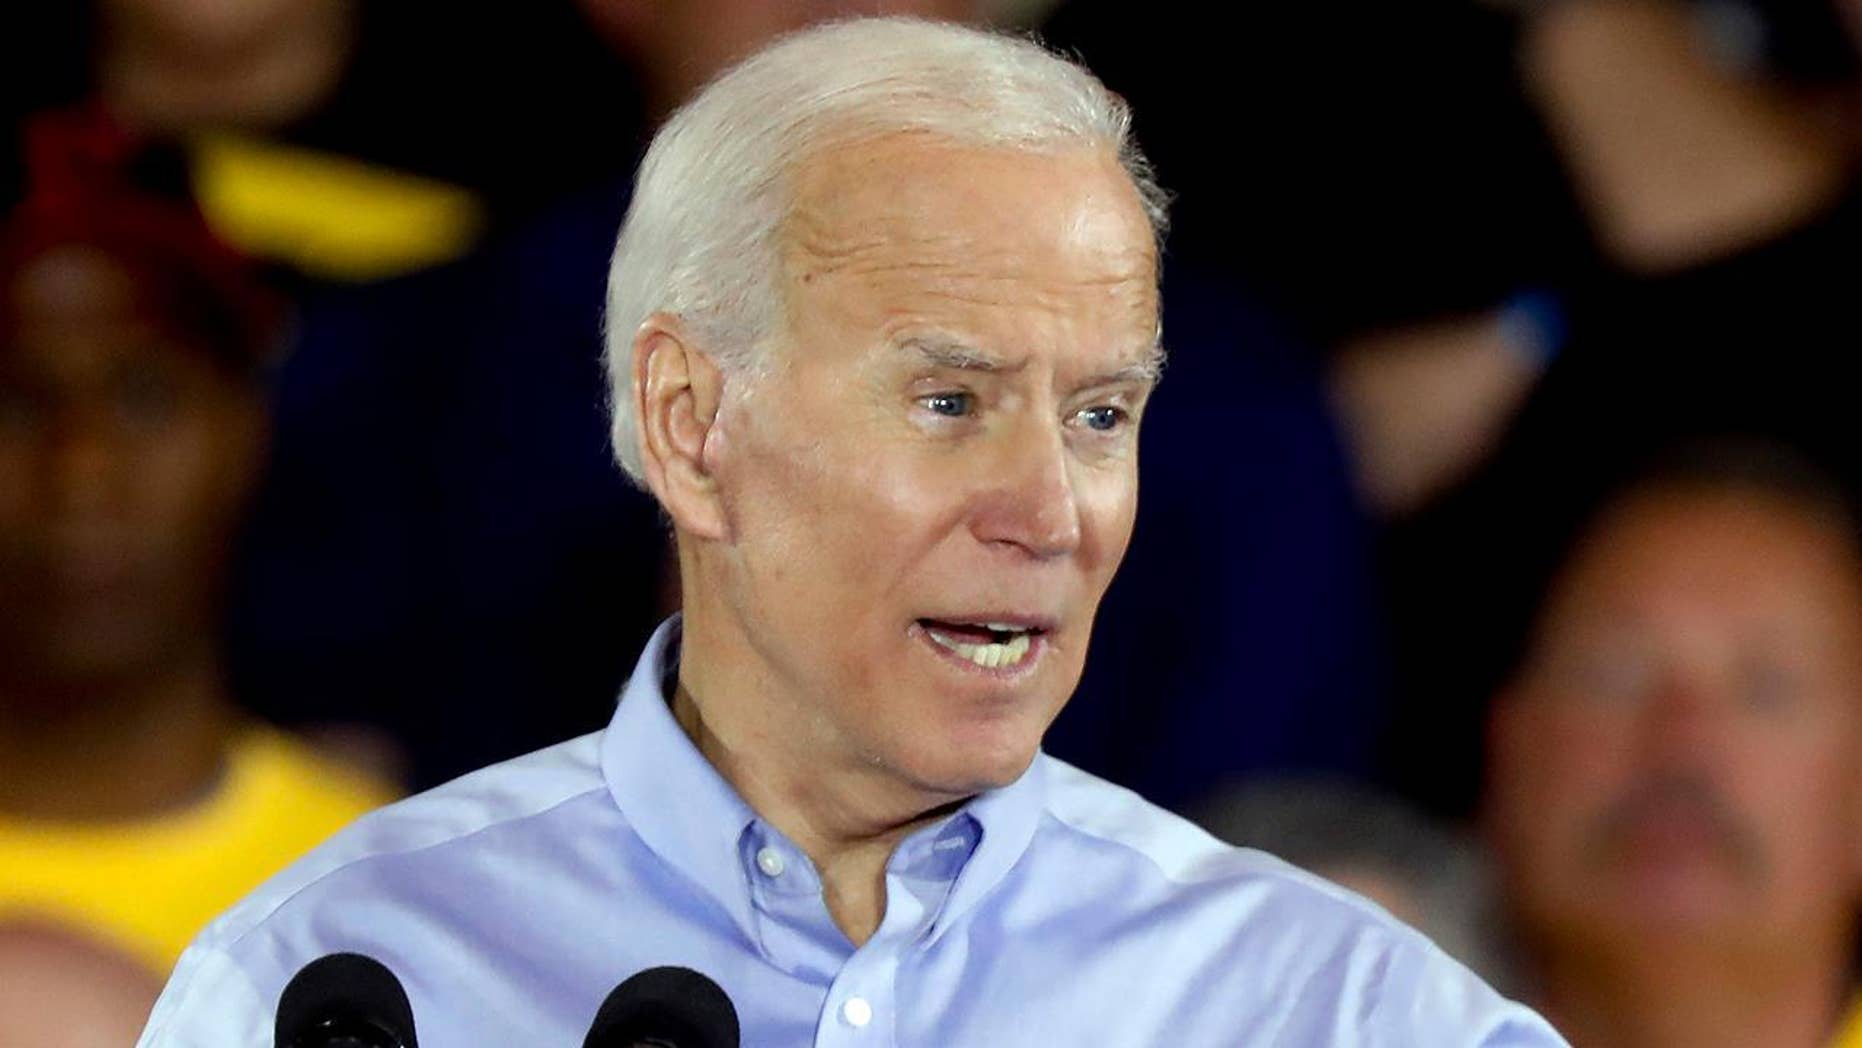 """In a newly posted video, Joe Biden can be seen telling a young activist he """"started this whole thing"""" in response to a question about climate change activism"""